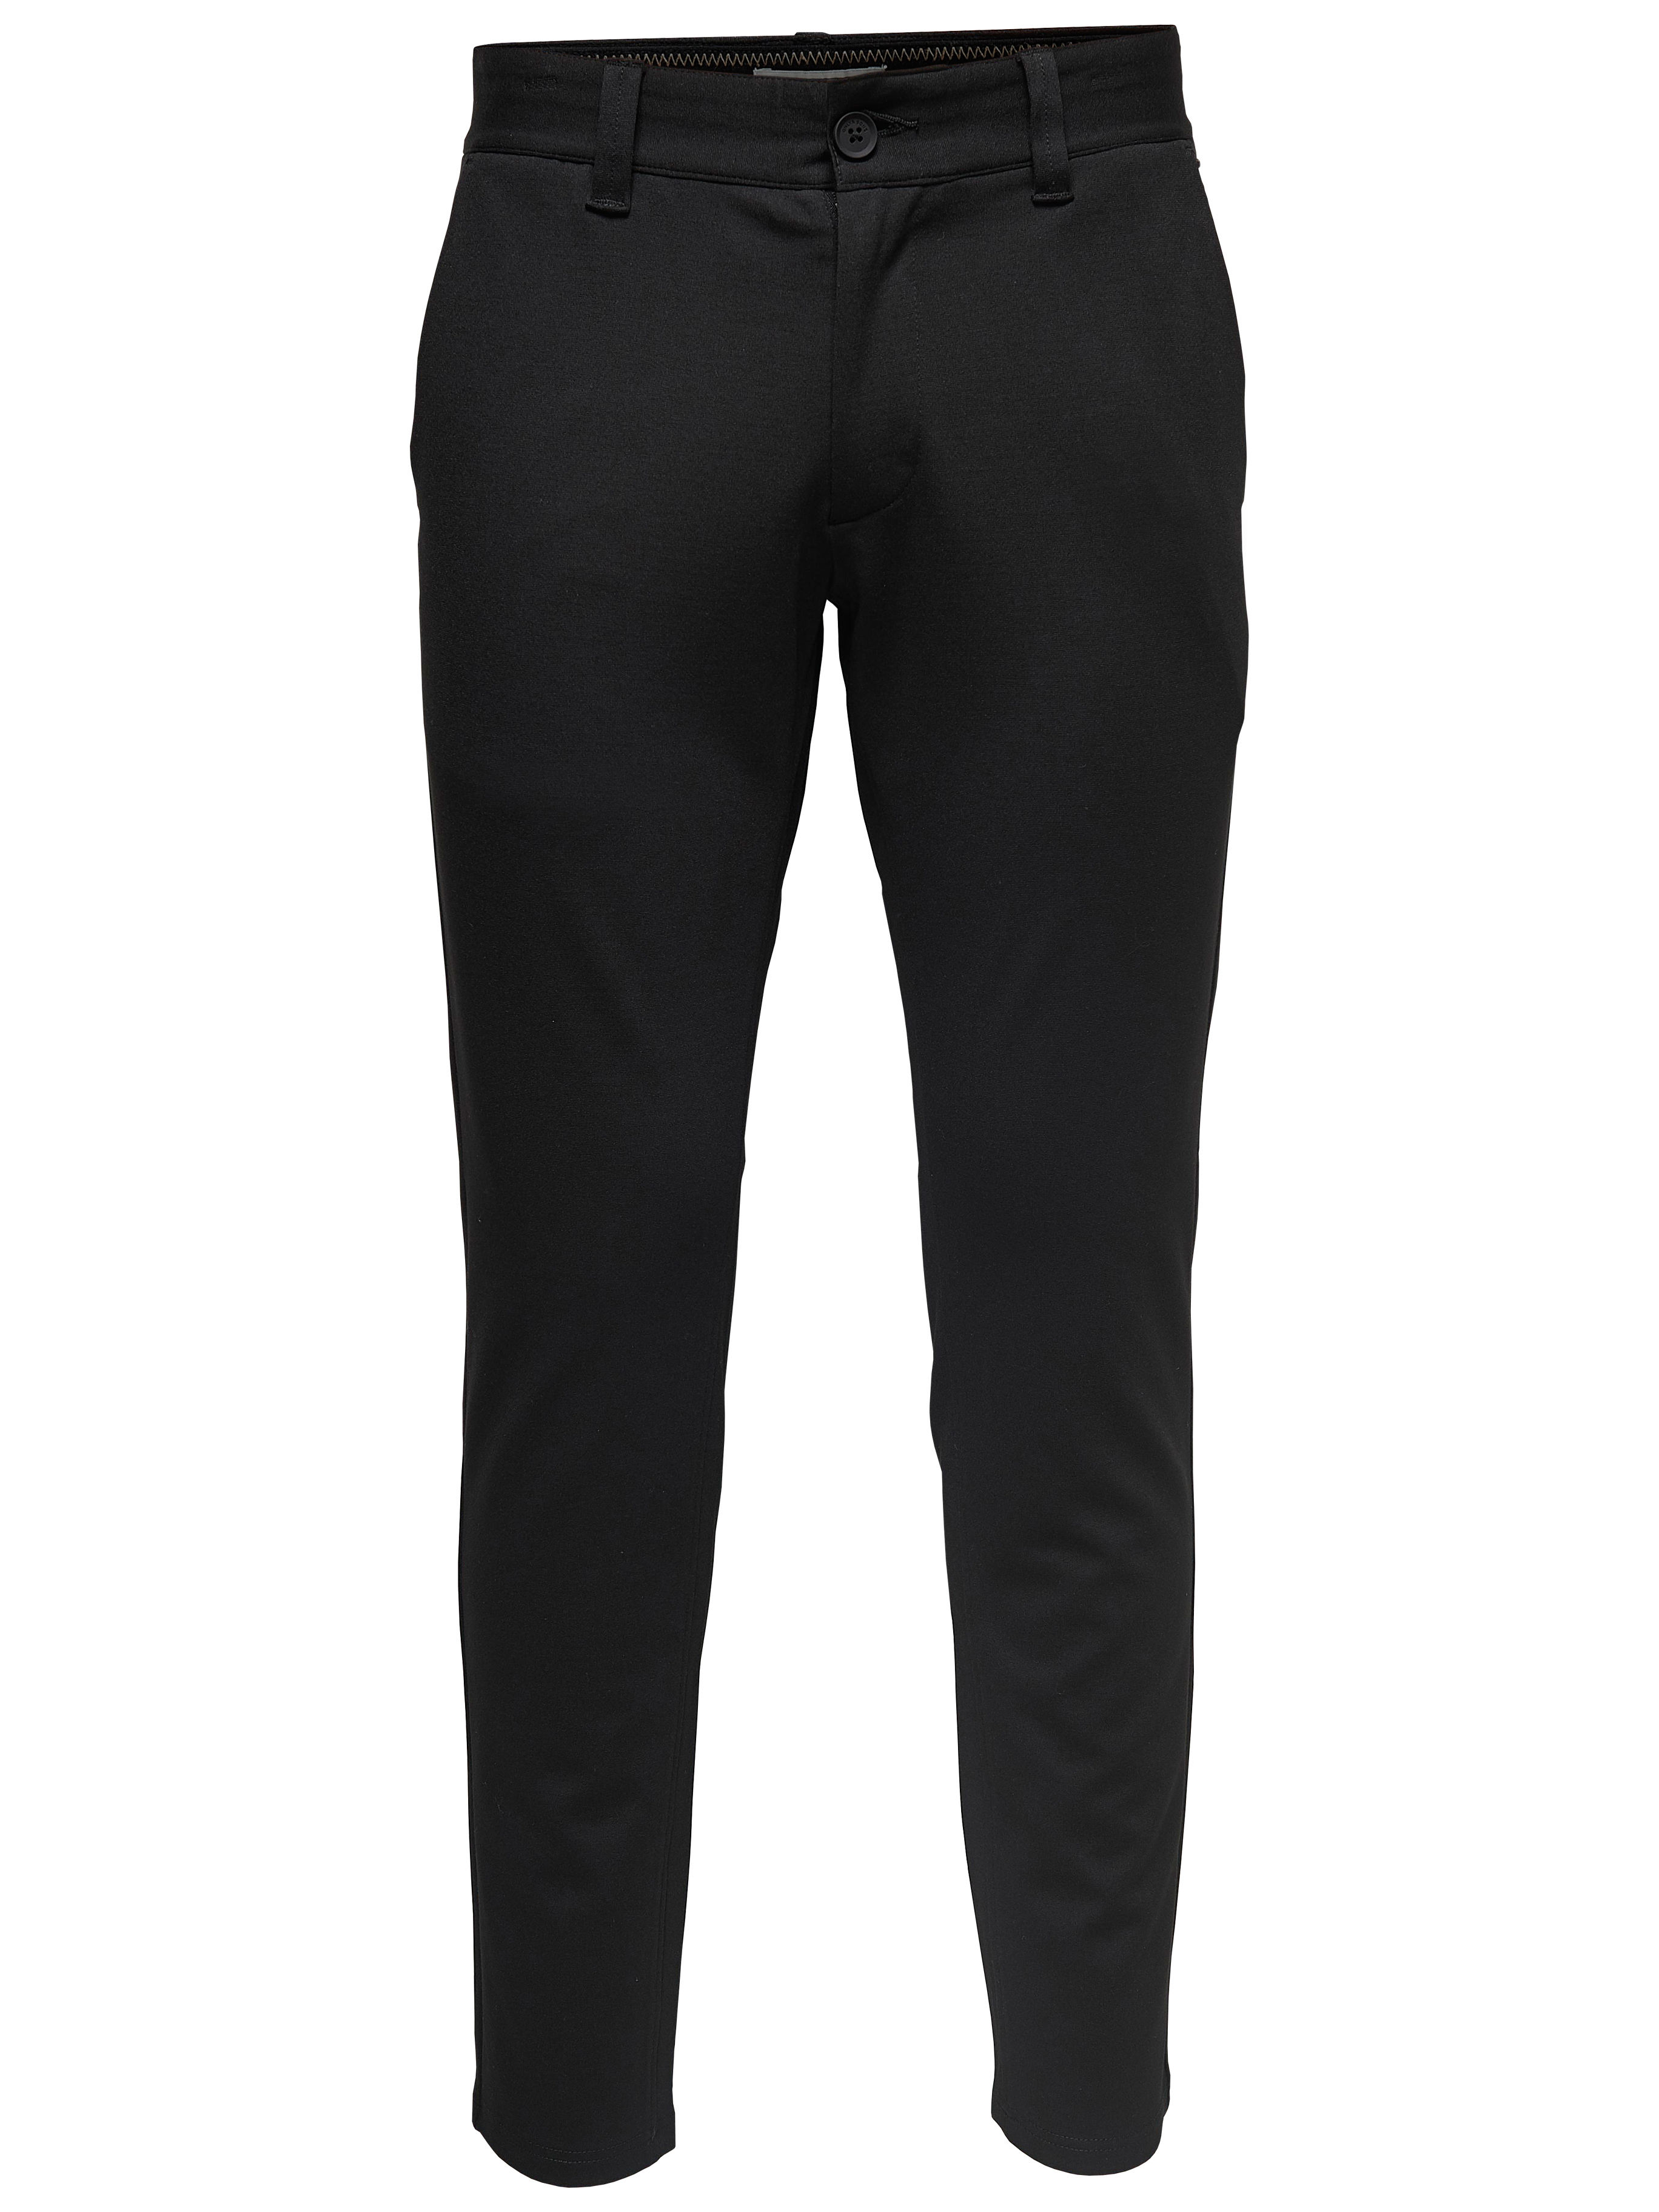 Performance Pants, Only & Sons, Mark chinos, black, 33/34